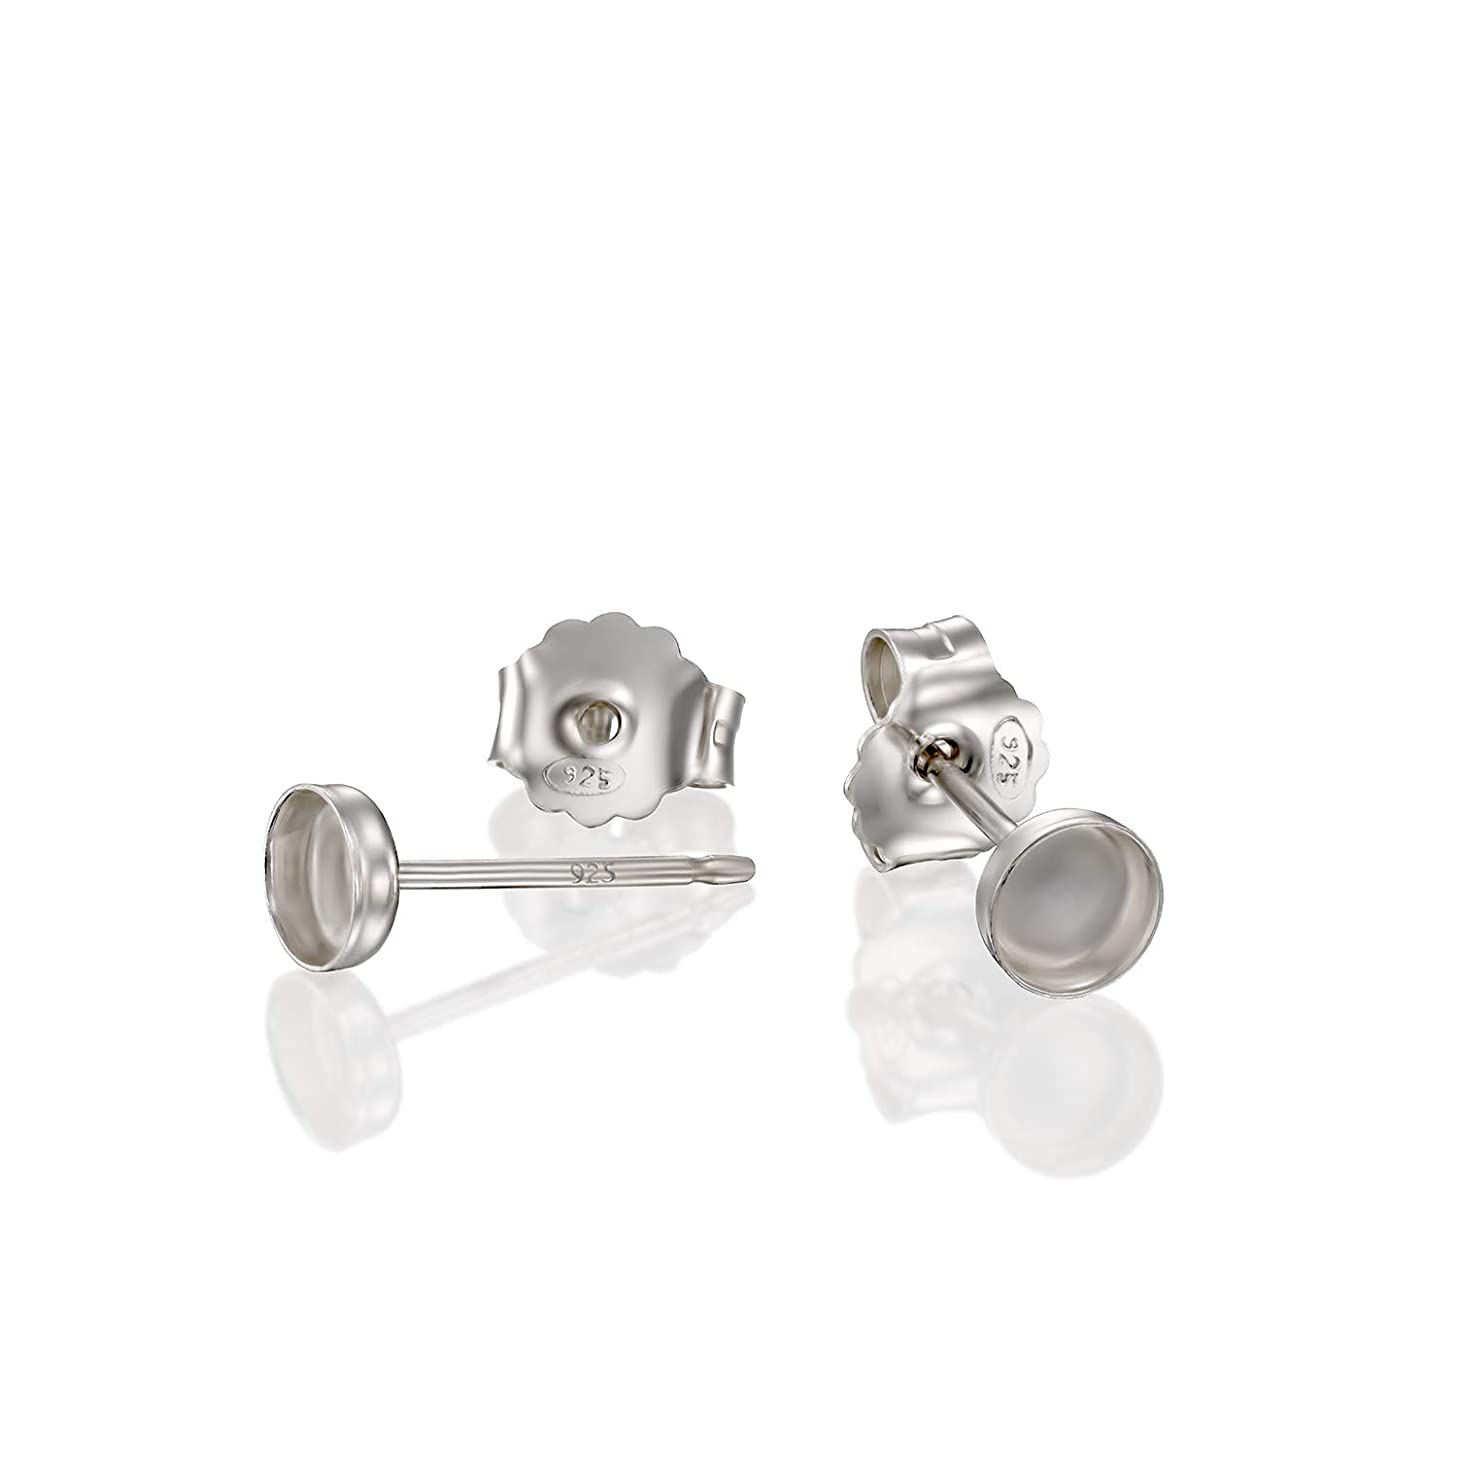 Round Setting 925 Sterling Silver 4 mm Bezel Cups Stud Earrings with Post & Butterfly Backs, 4 Pcs (2 Pairs)